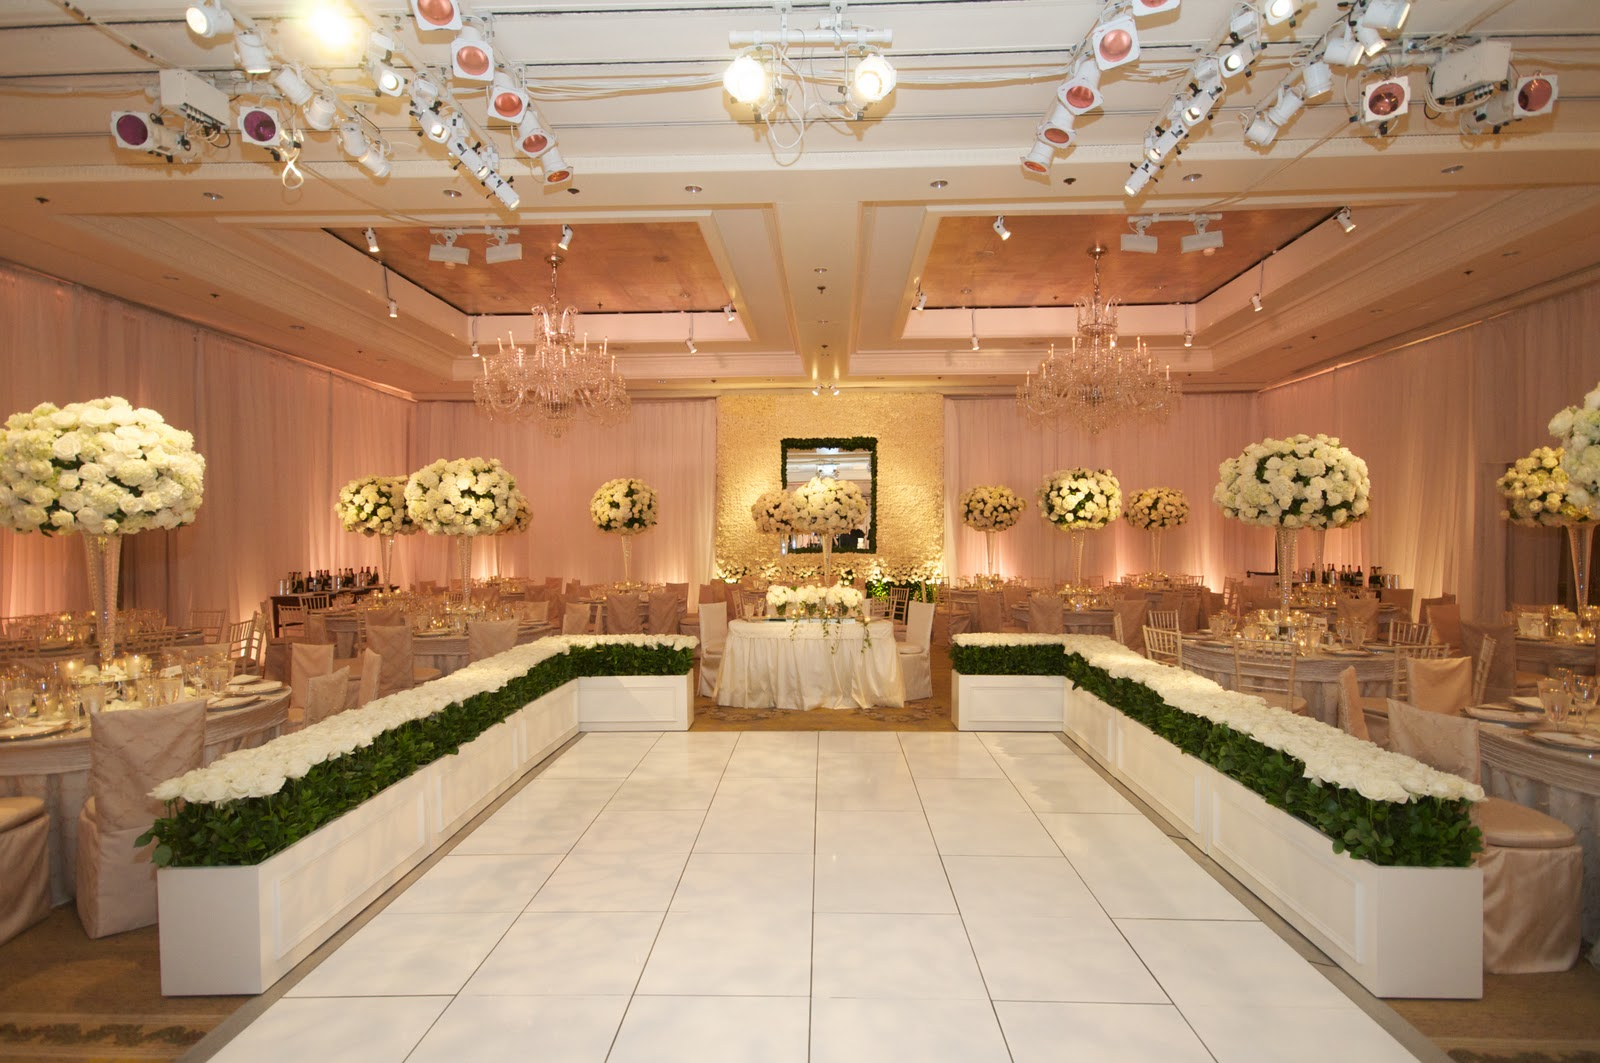 It Was An Amazing Transformation With Ceremony And Reception In The Same Room